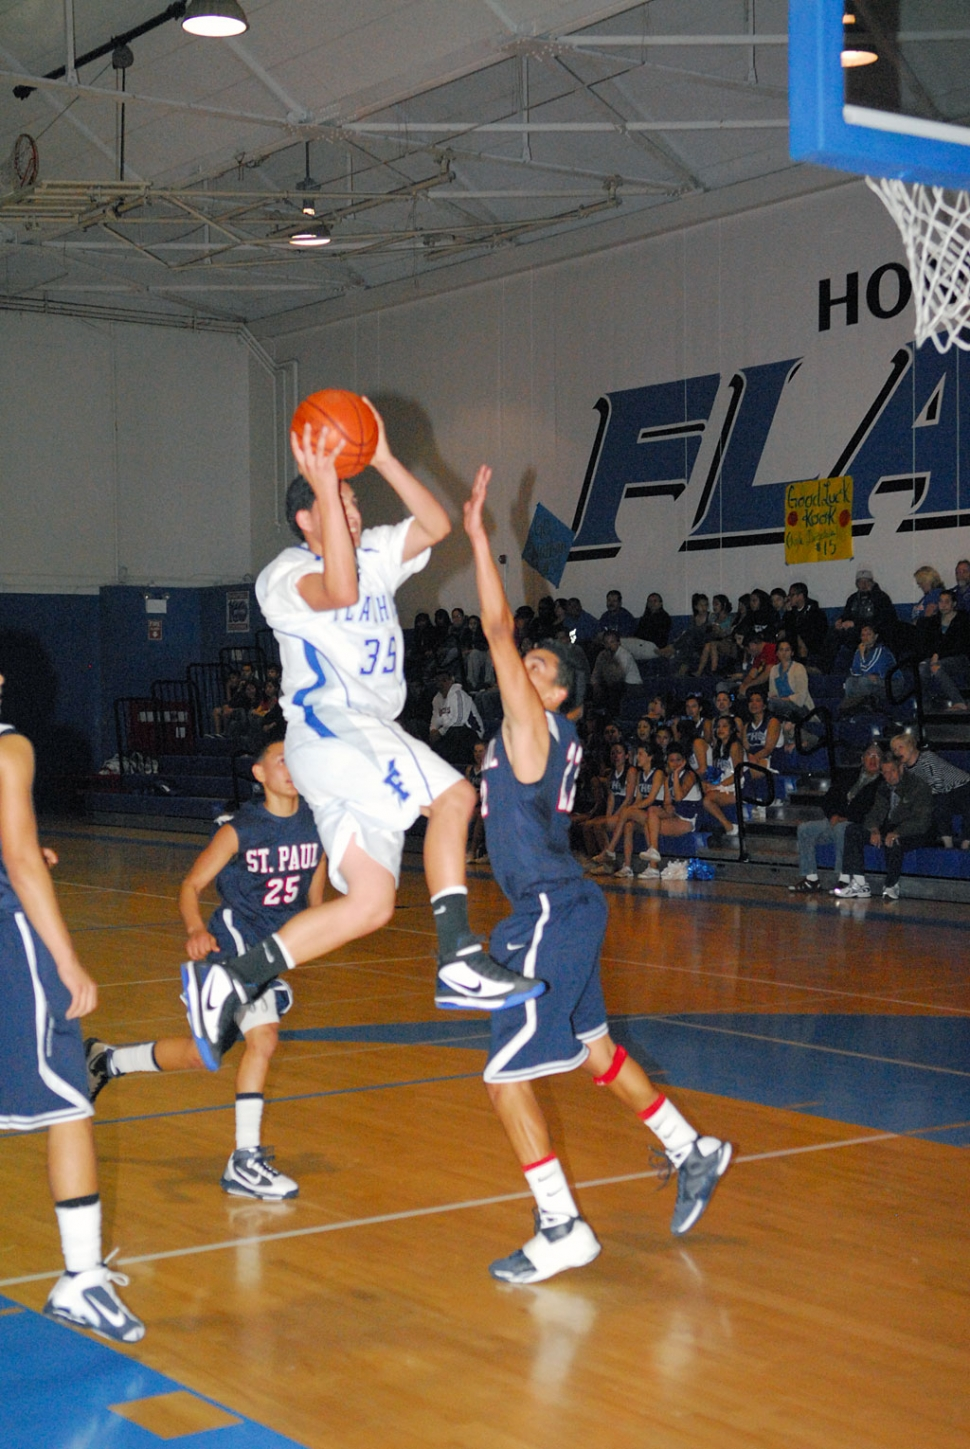 In the 1st Round CIF-SS game Division 4A Fillmore won 72-46. (pictured above) Chris De La Paz scored 8 points, 2 rebounds. Fillmore played solid defense all game and shot the ball well (31-52 from the floor). Angel Barajas scored 14 points, 11 rebounds, 4 assists. Corey Cole scored 13 points, 4 steals. Flashes Overall Record 18-8. Frontier League 8-2 (2nd place). Playoffs Record: 1-0.